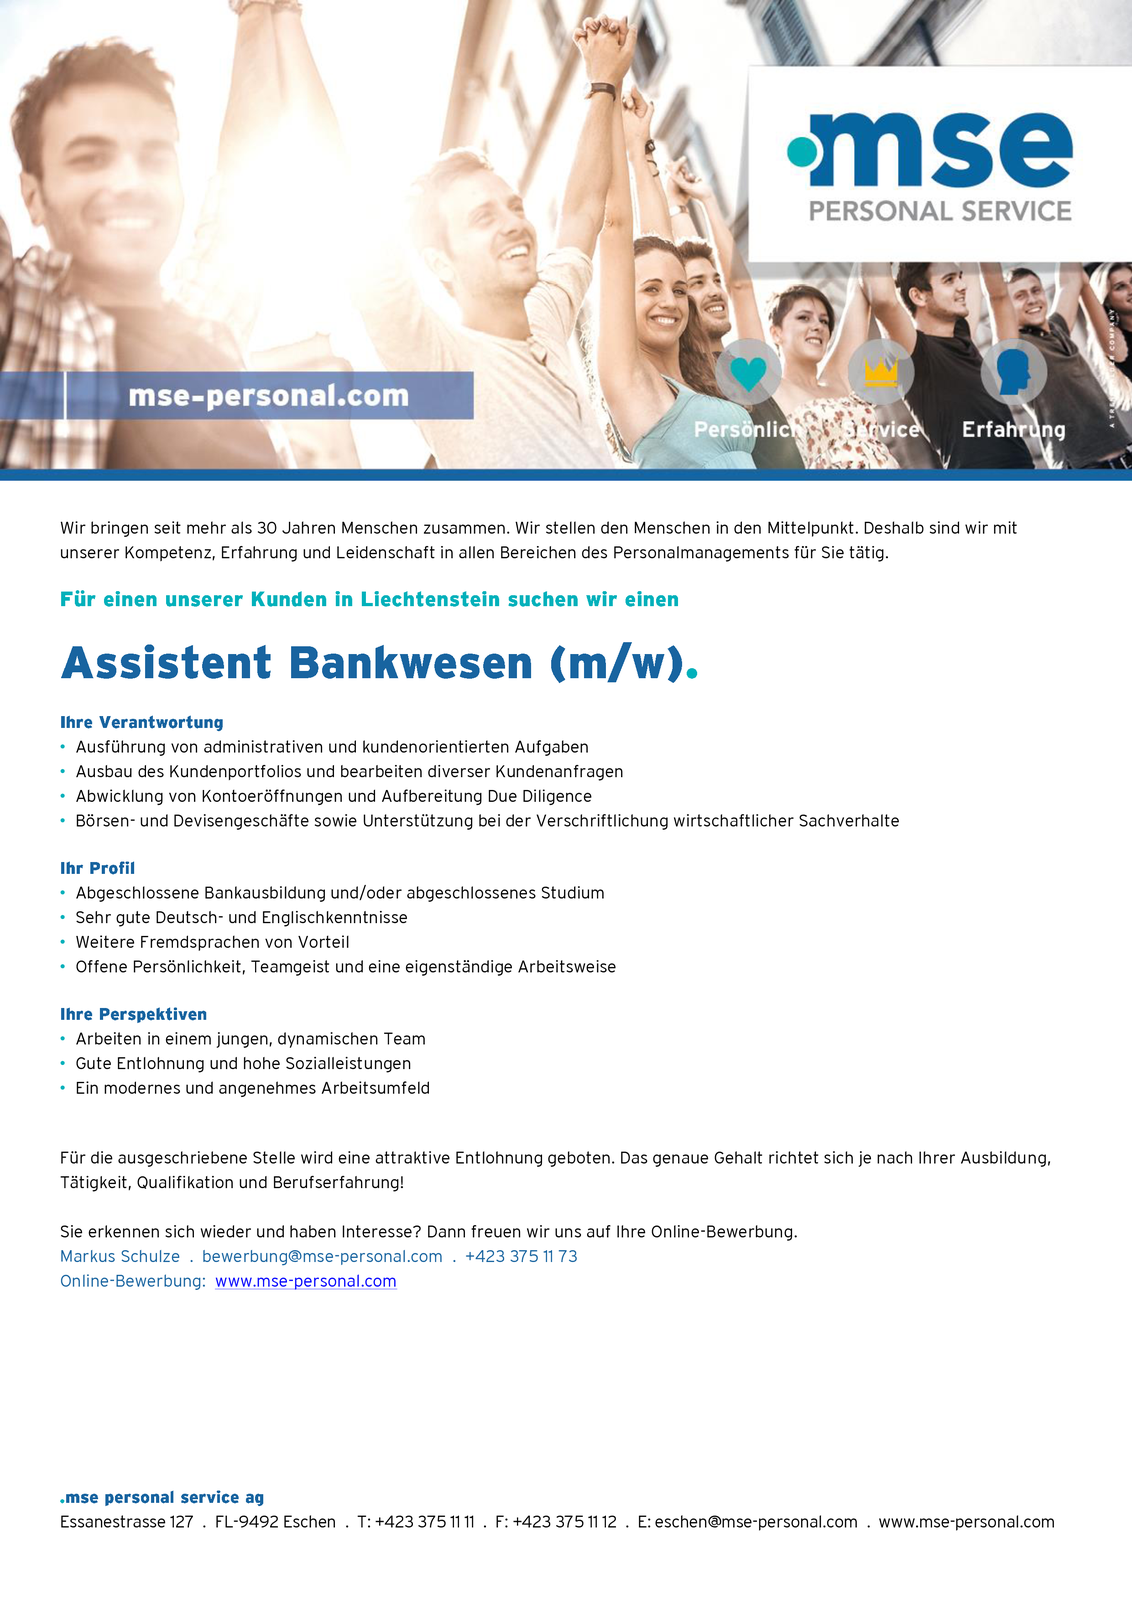 Assistent Bankwesen (m/w)